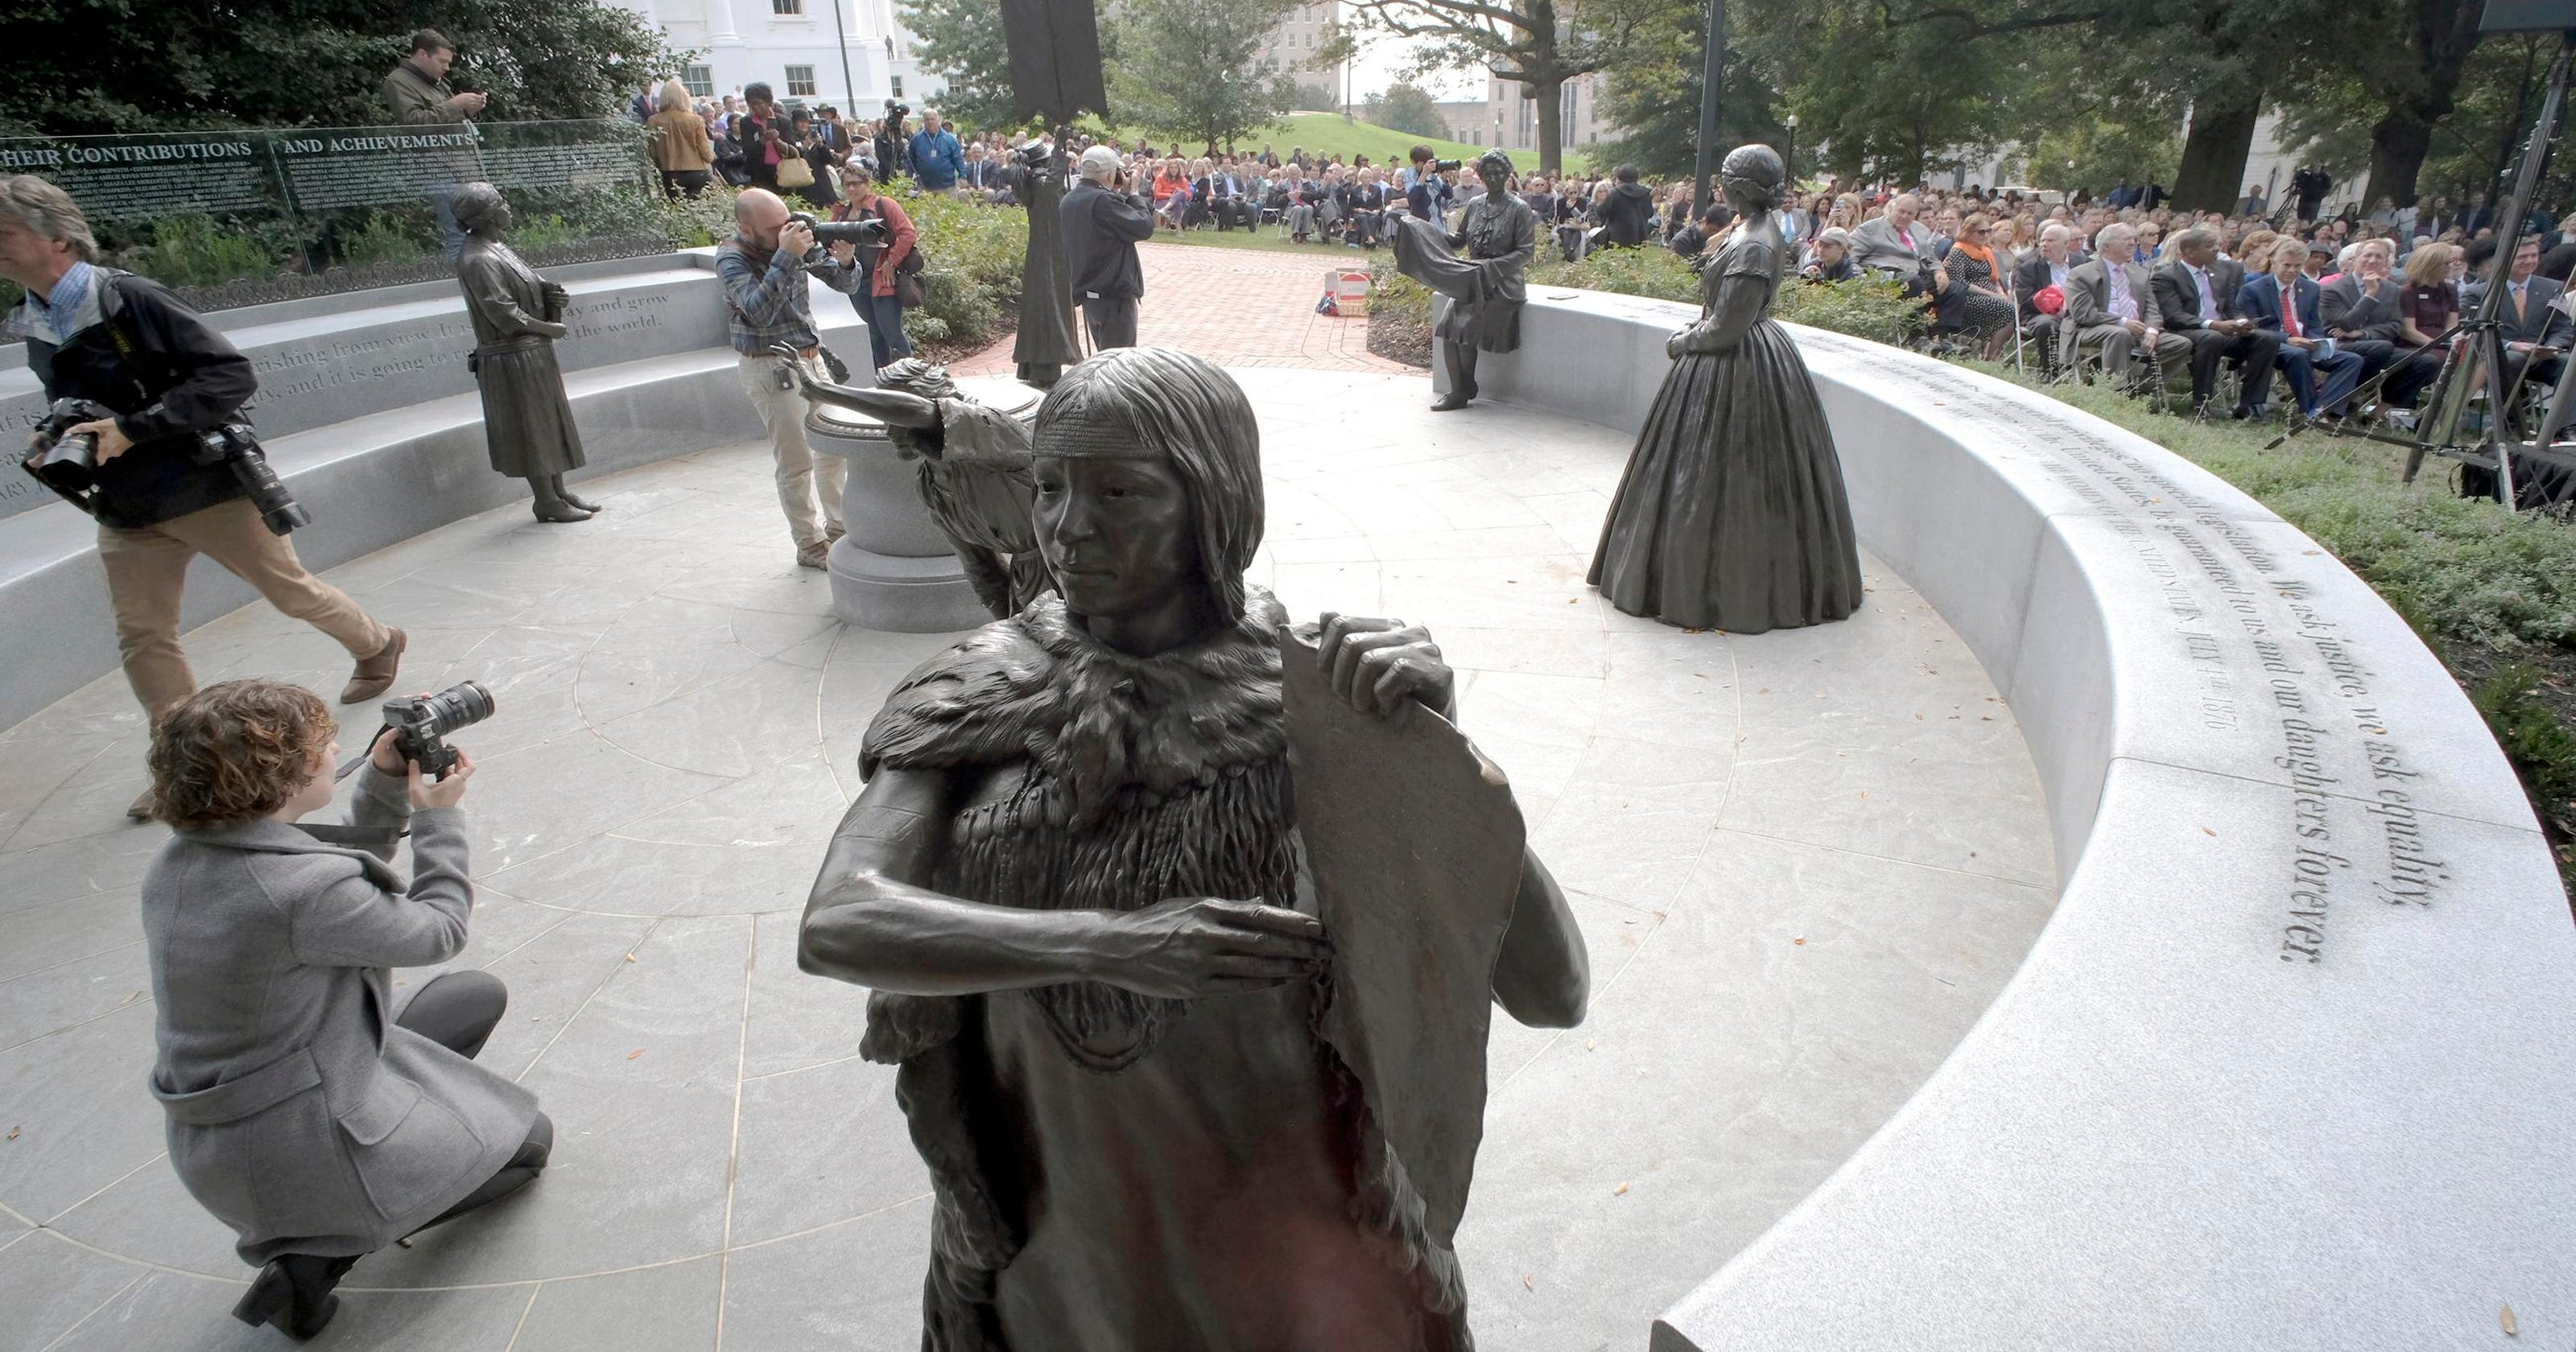 Monument to women, playground scare, Dali theft: News from around our 50 states